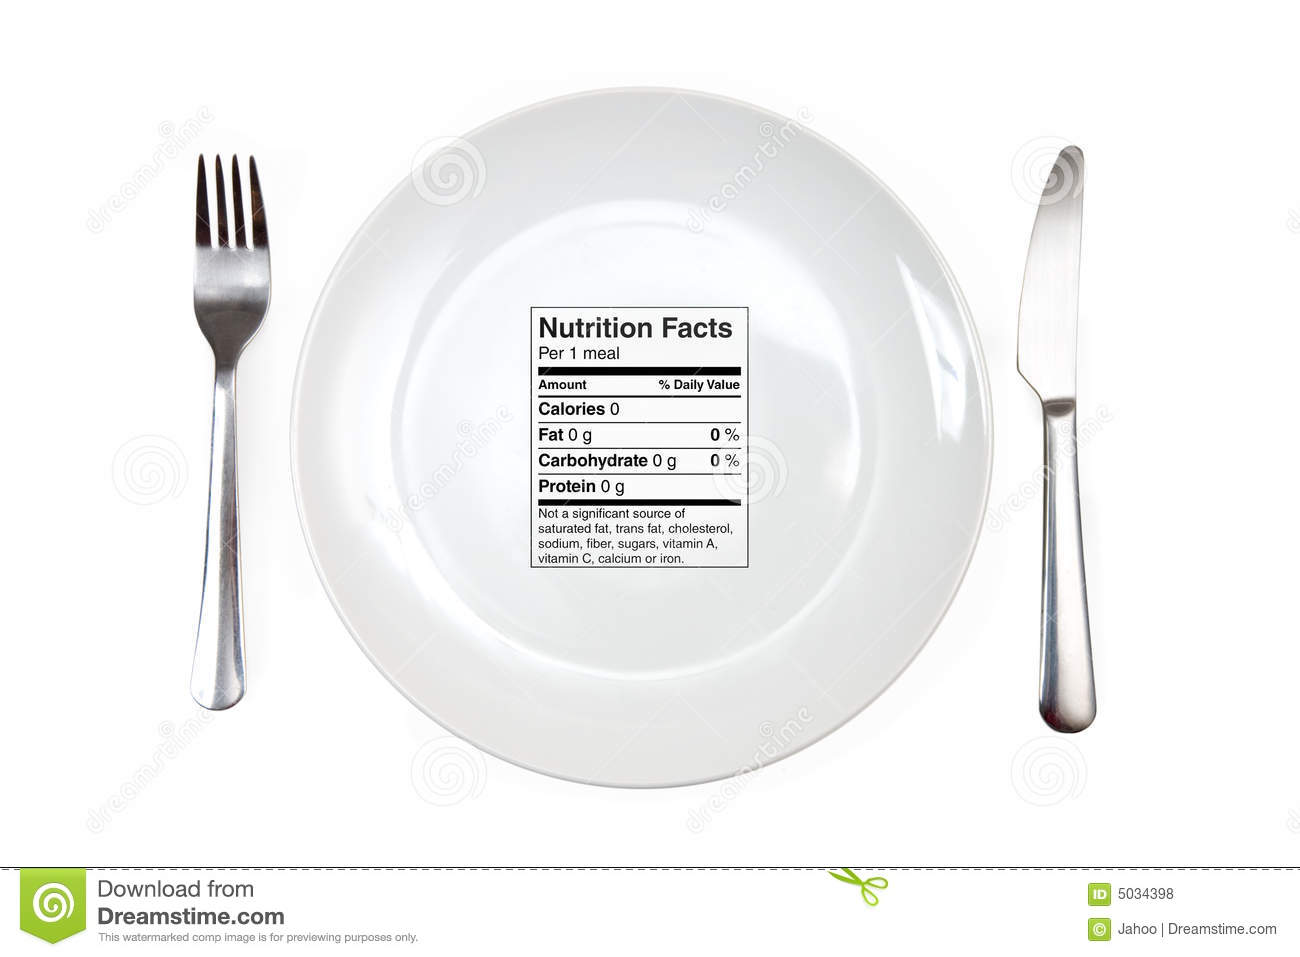 Meal with 0 calories